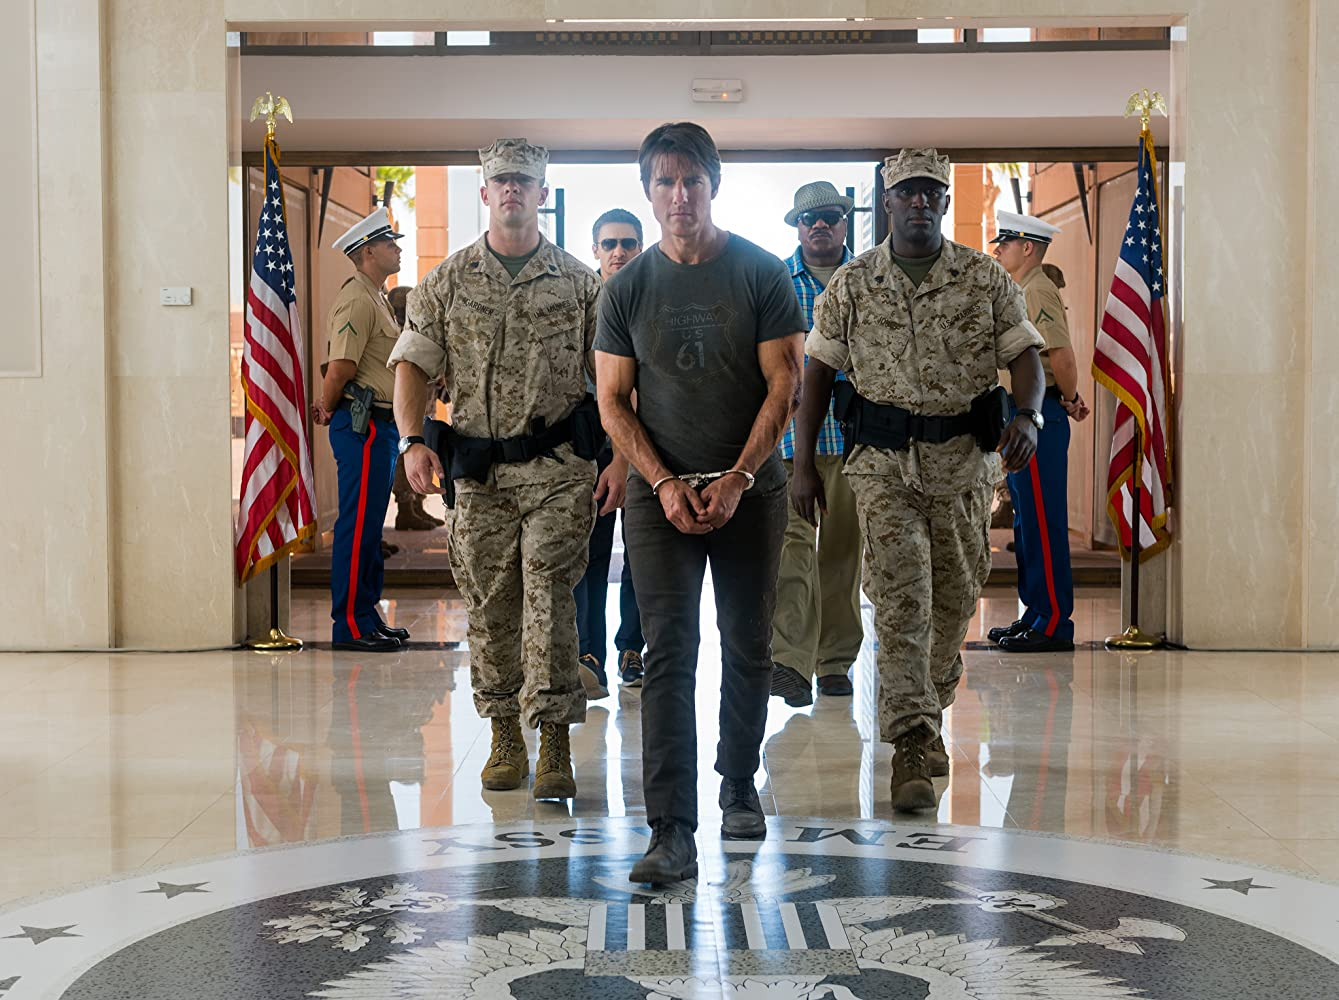 Tom Cruise, Ving Rhames, Jeremy Renner, and Vauxhall Jermaine in Mission: Impossible - Rogue Nation (2015)